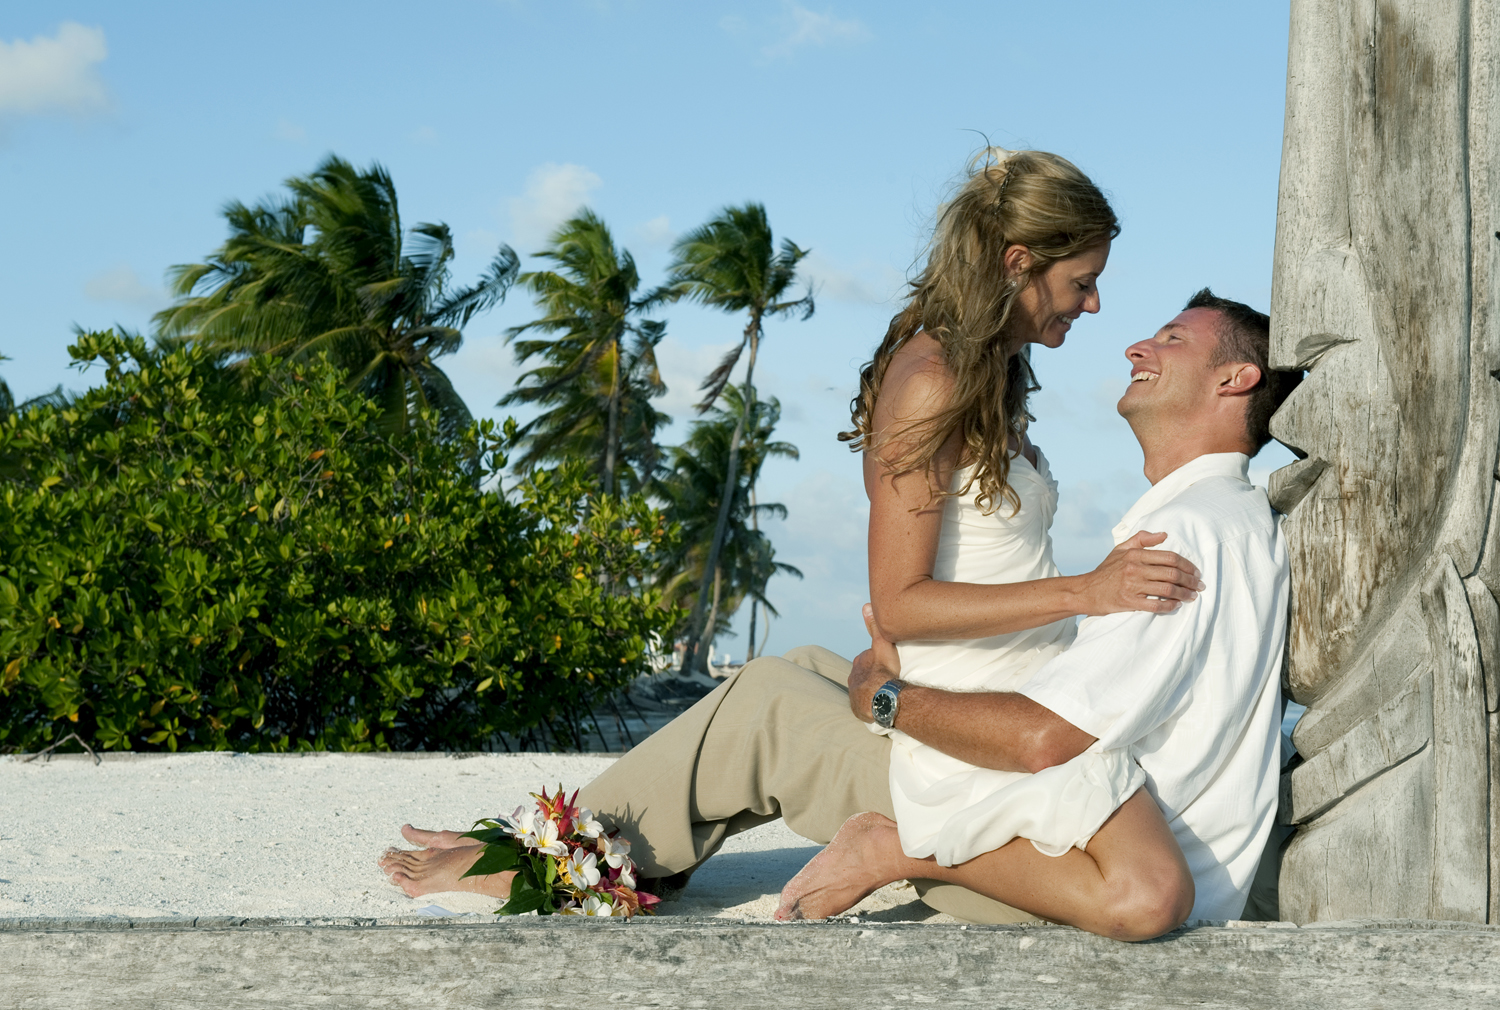 belize wedding photography ambergris caye wedding wedding in san pedro weddings belize